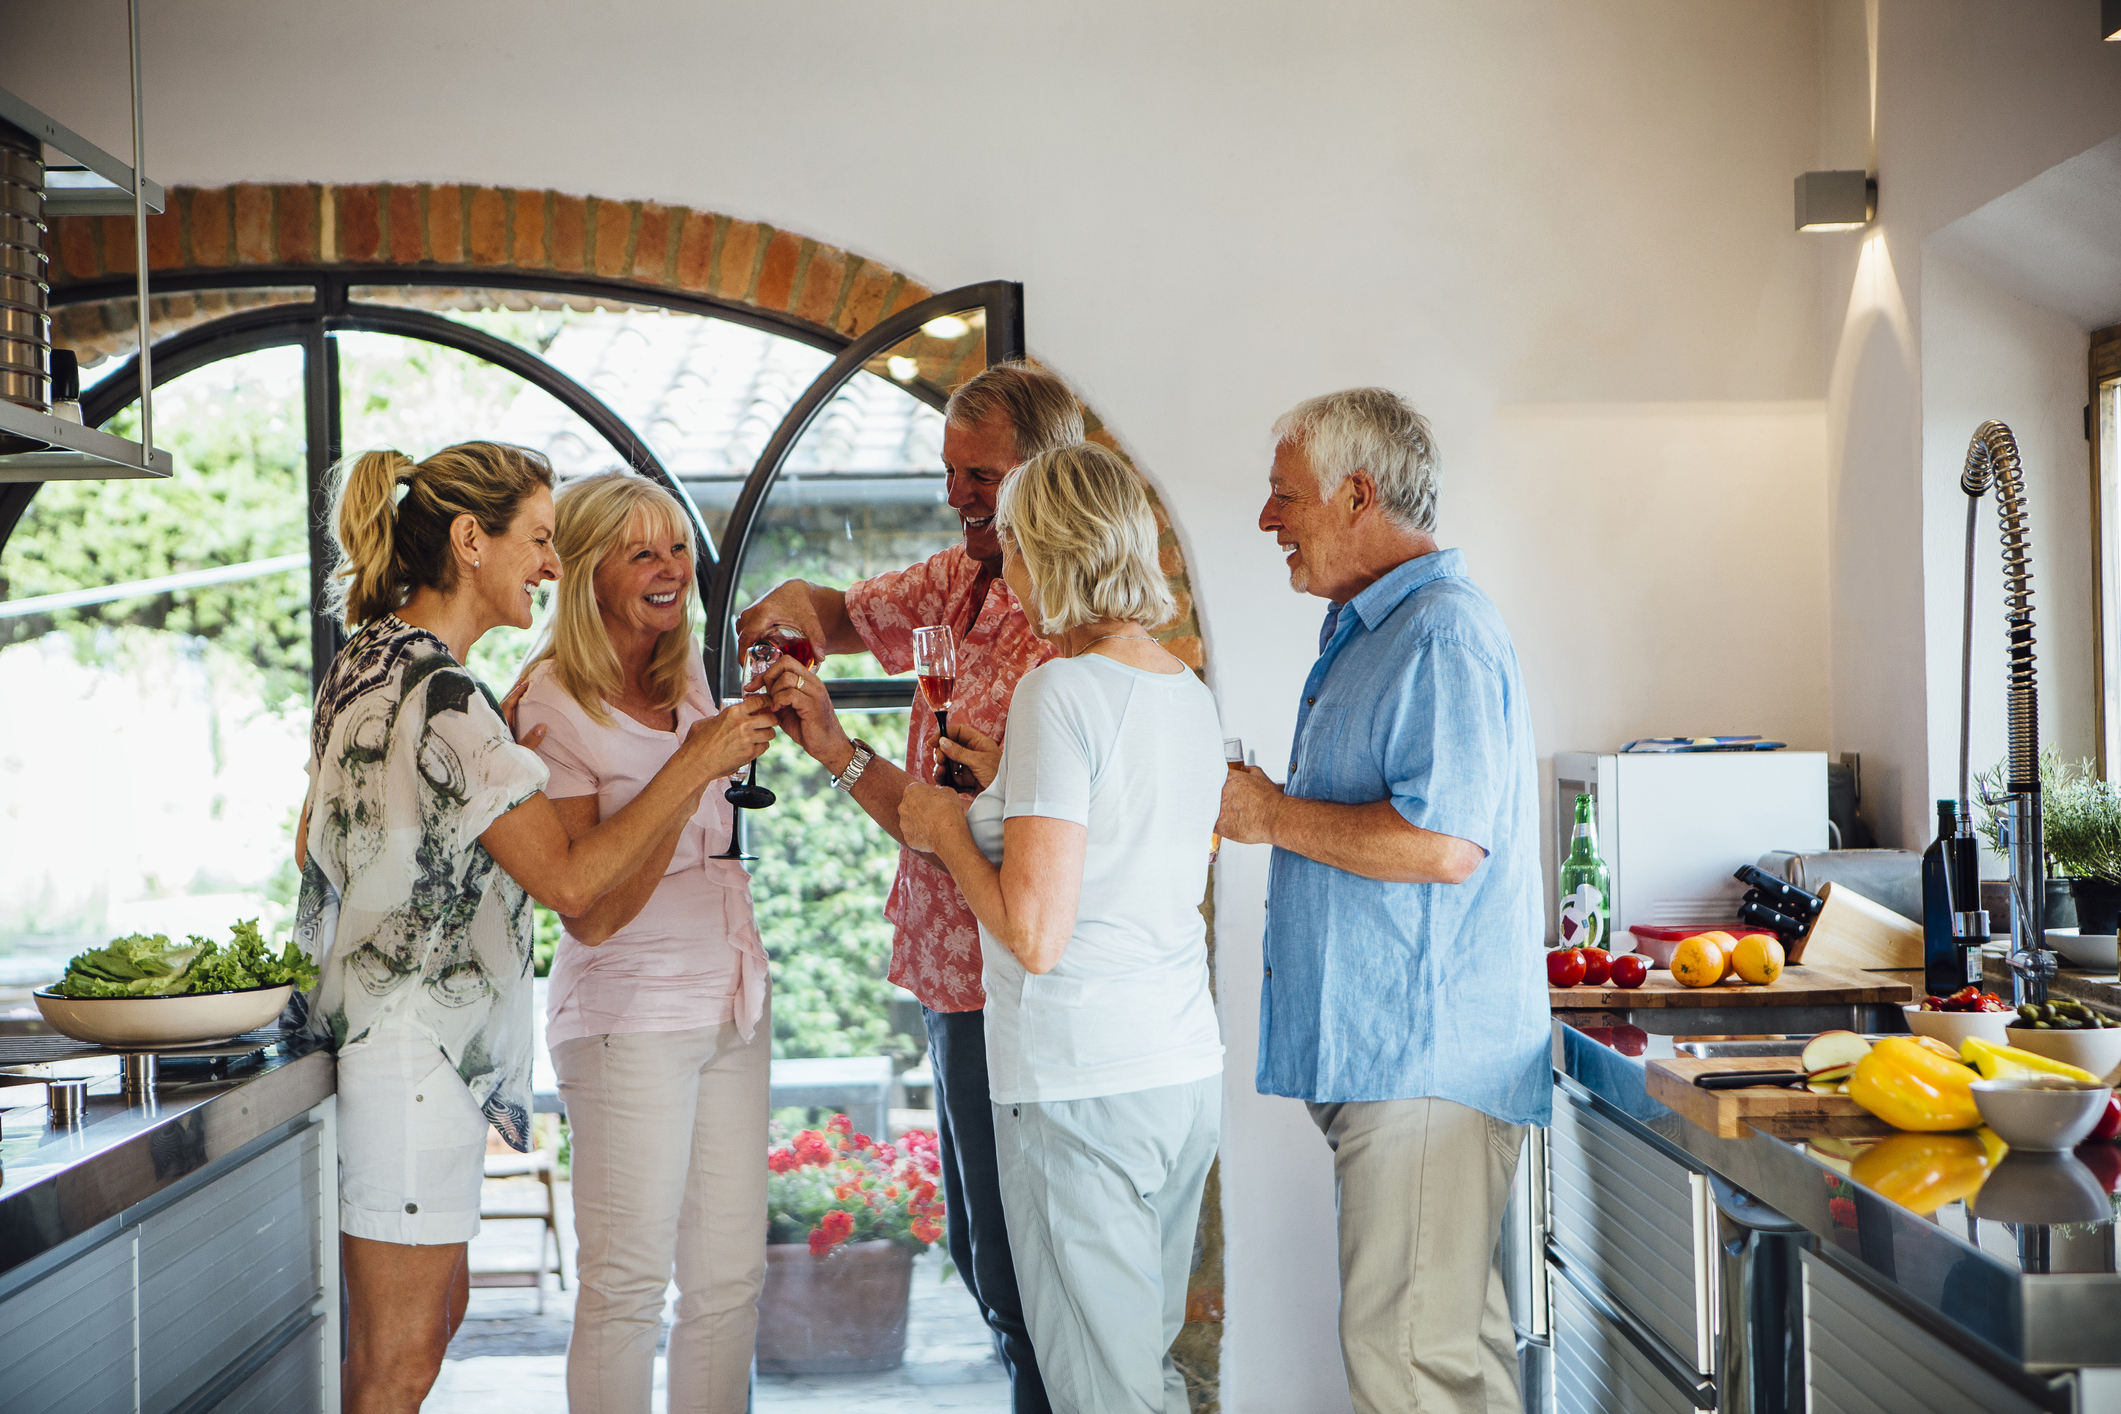 4 Tips for Throwing the Best Housewarming Party